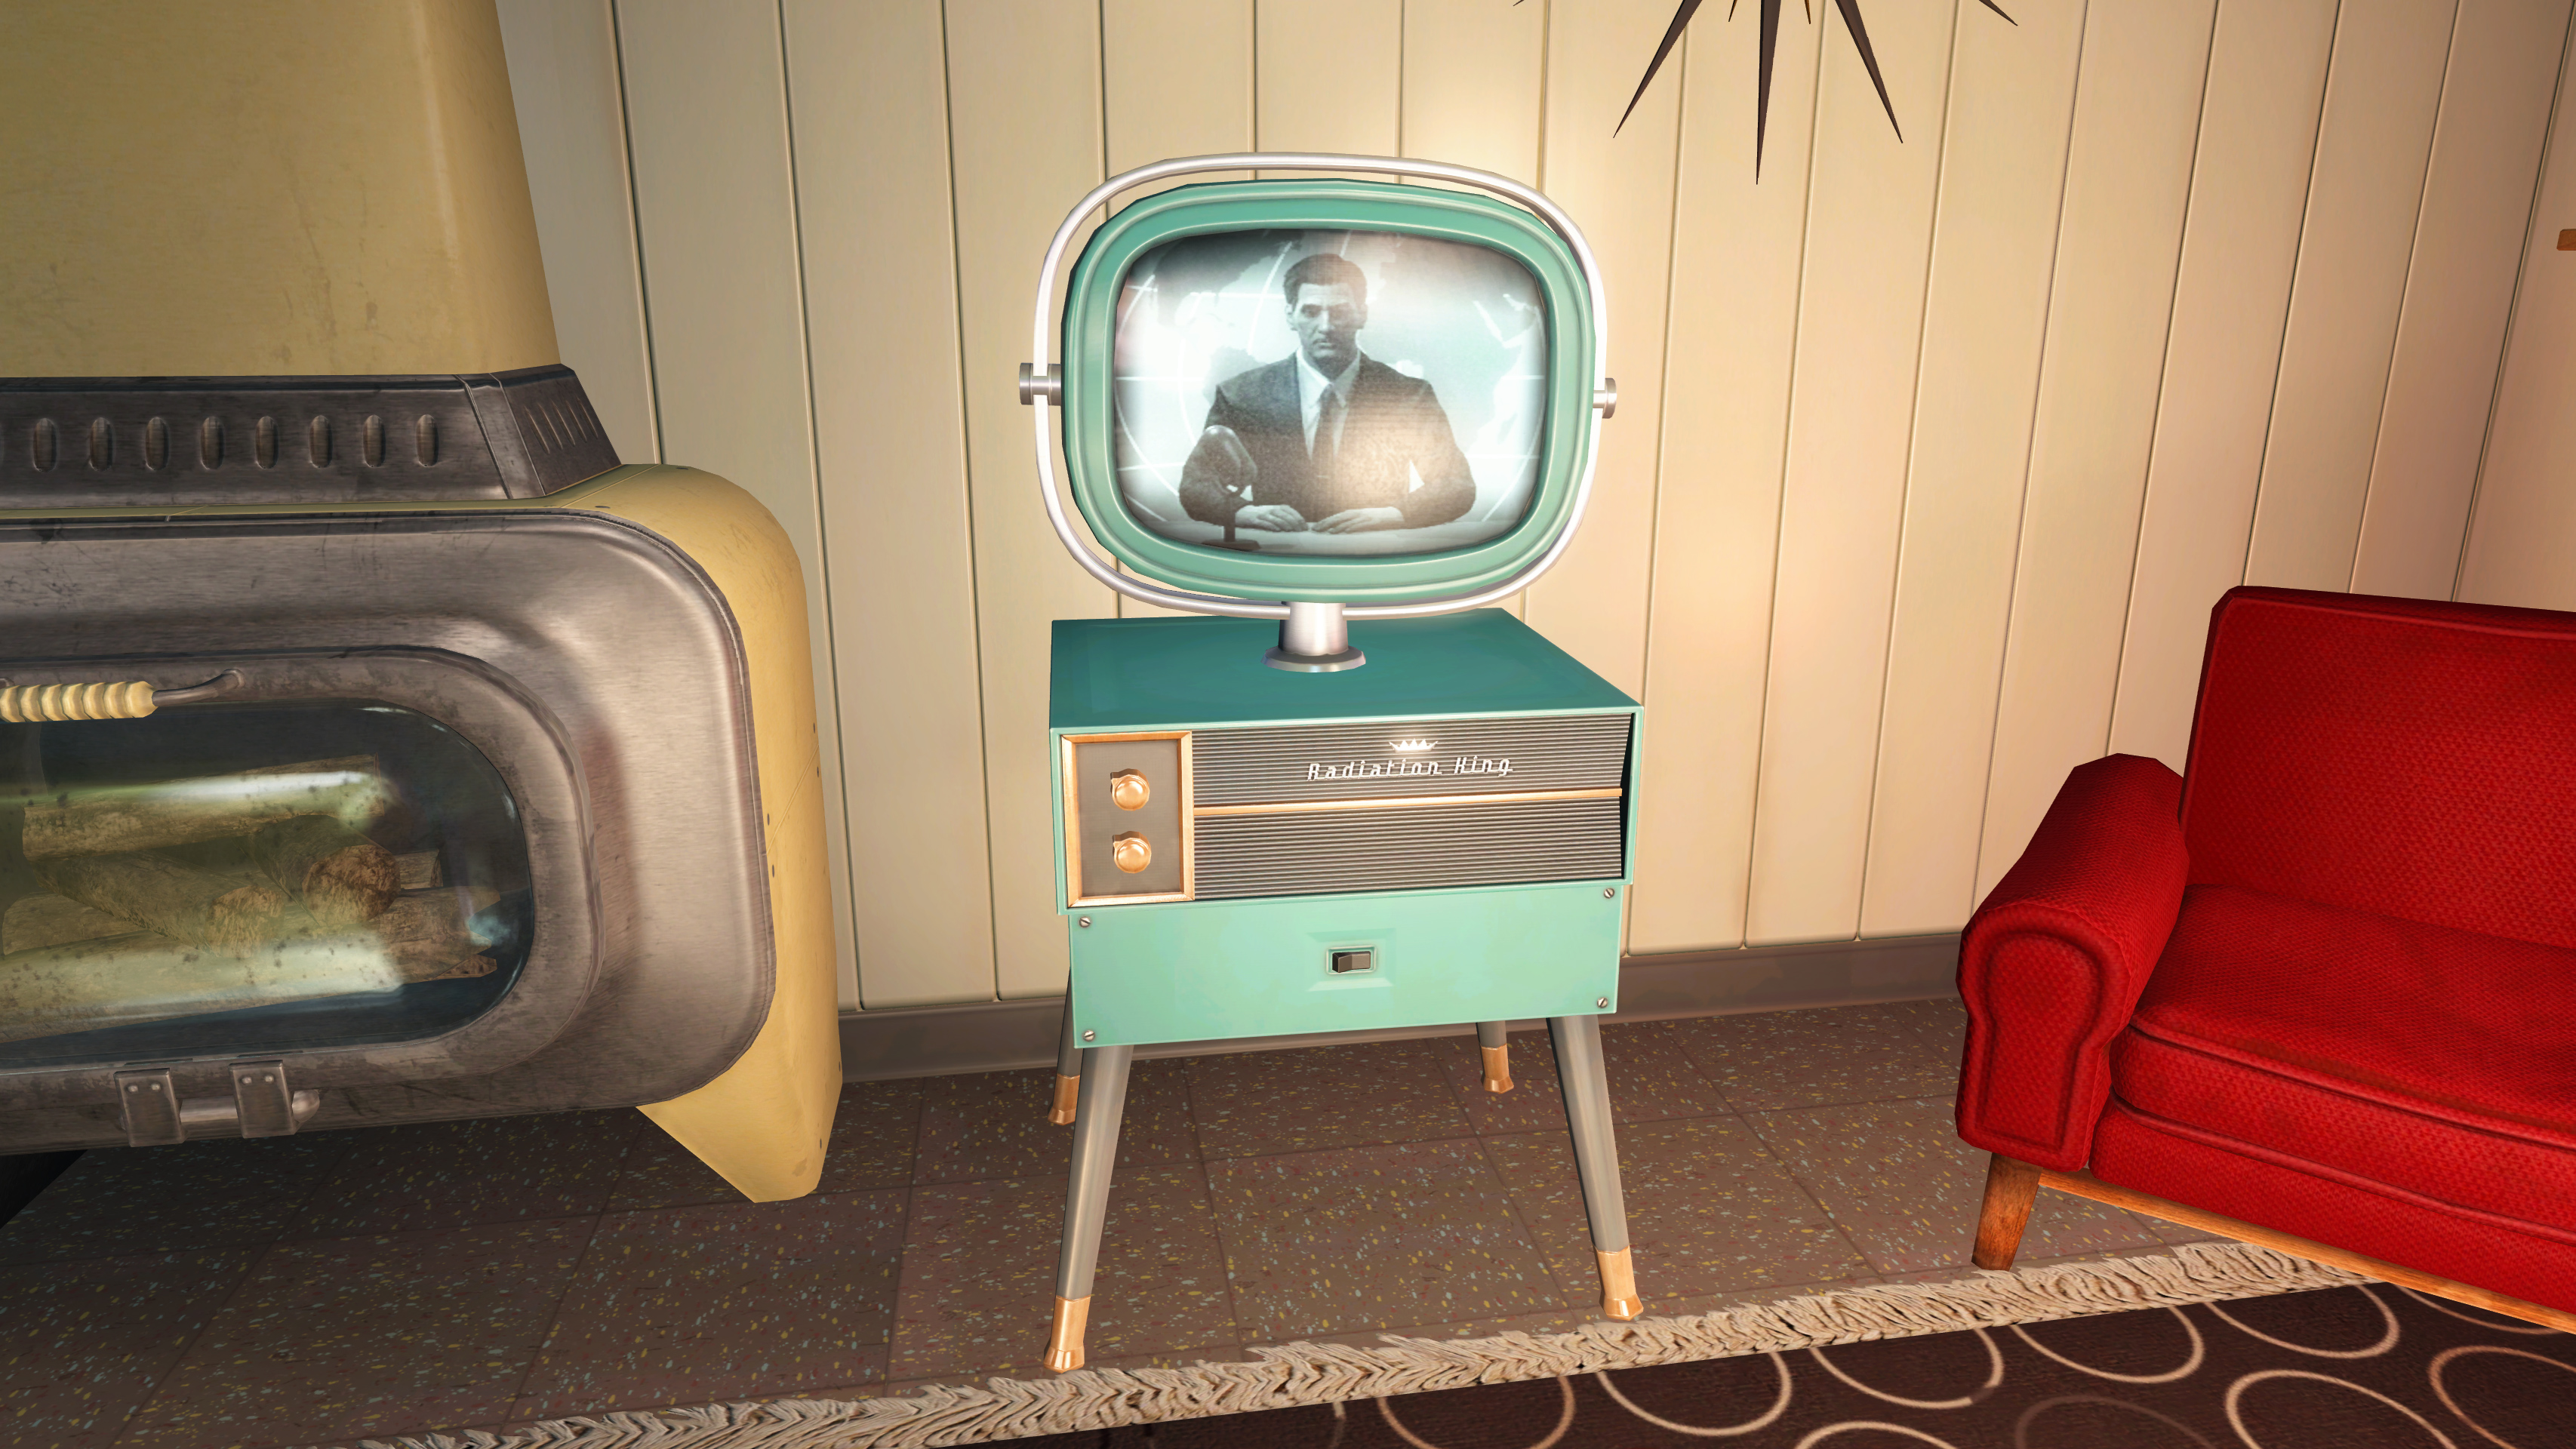 FO4 Radiation King TV in the House of Tomorrow